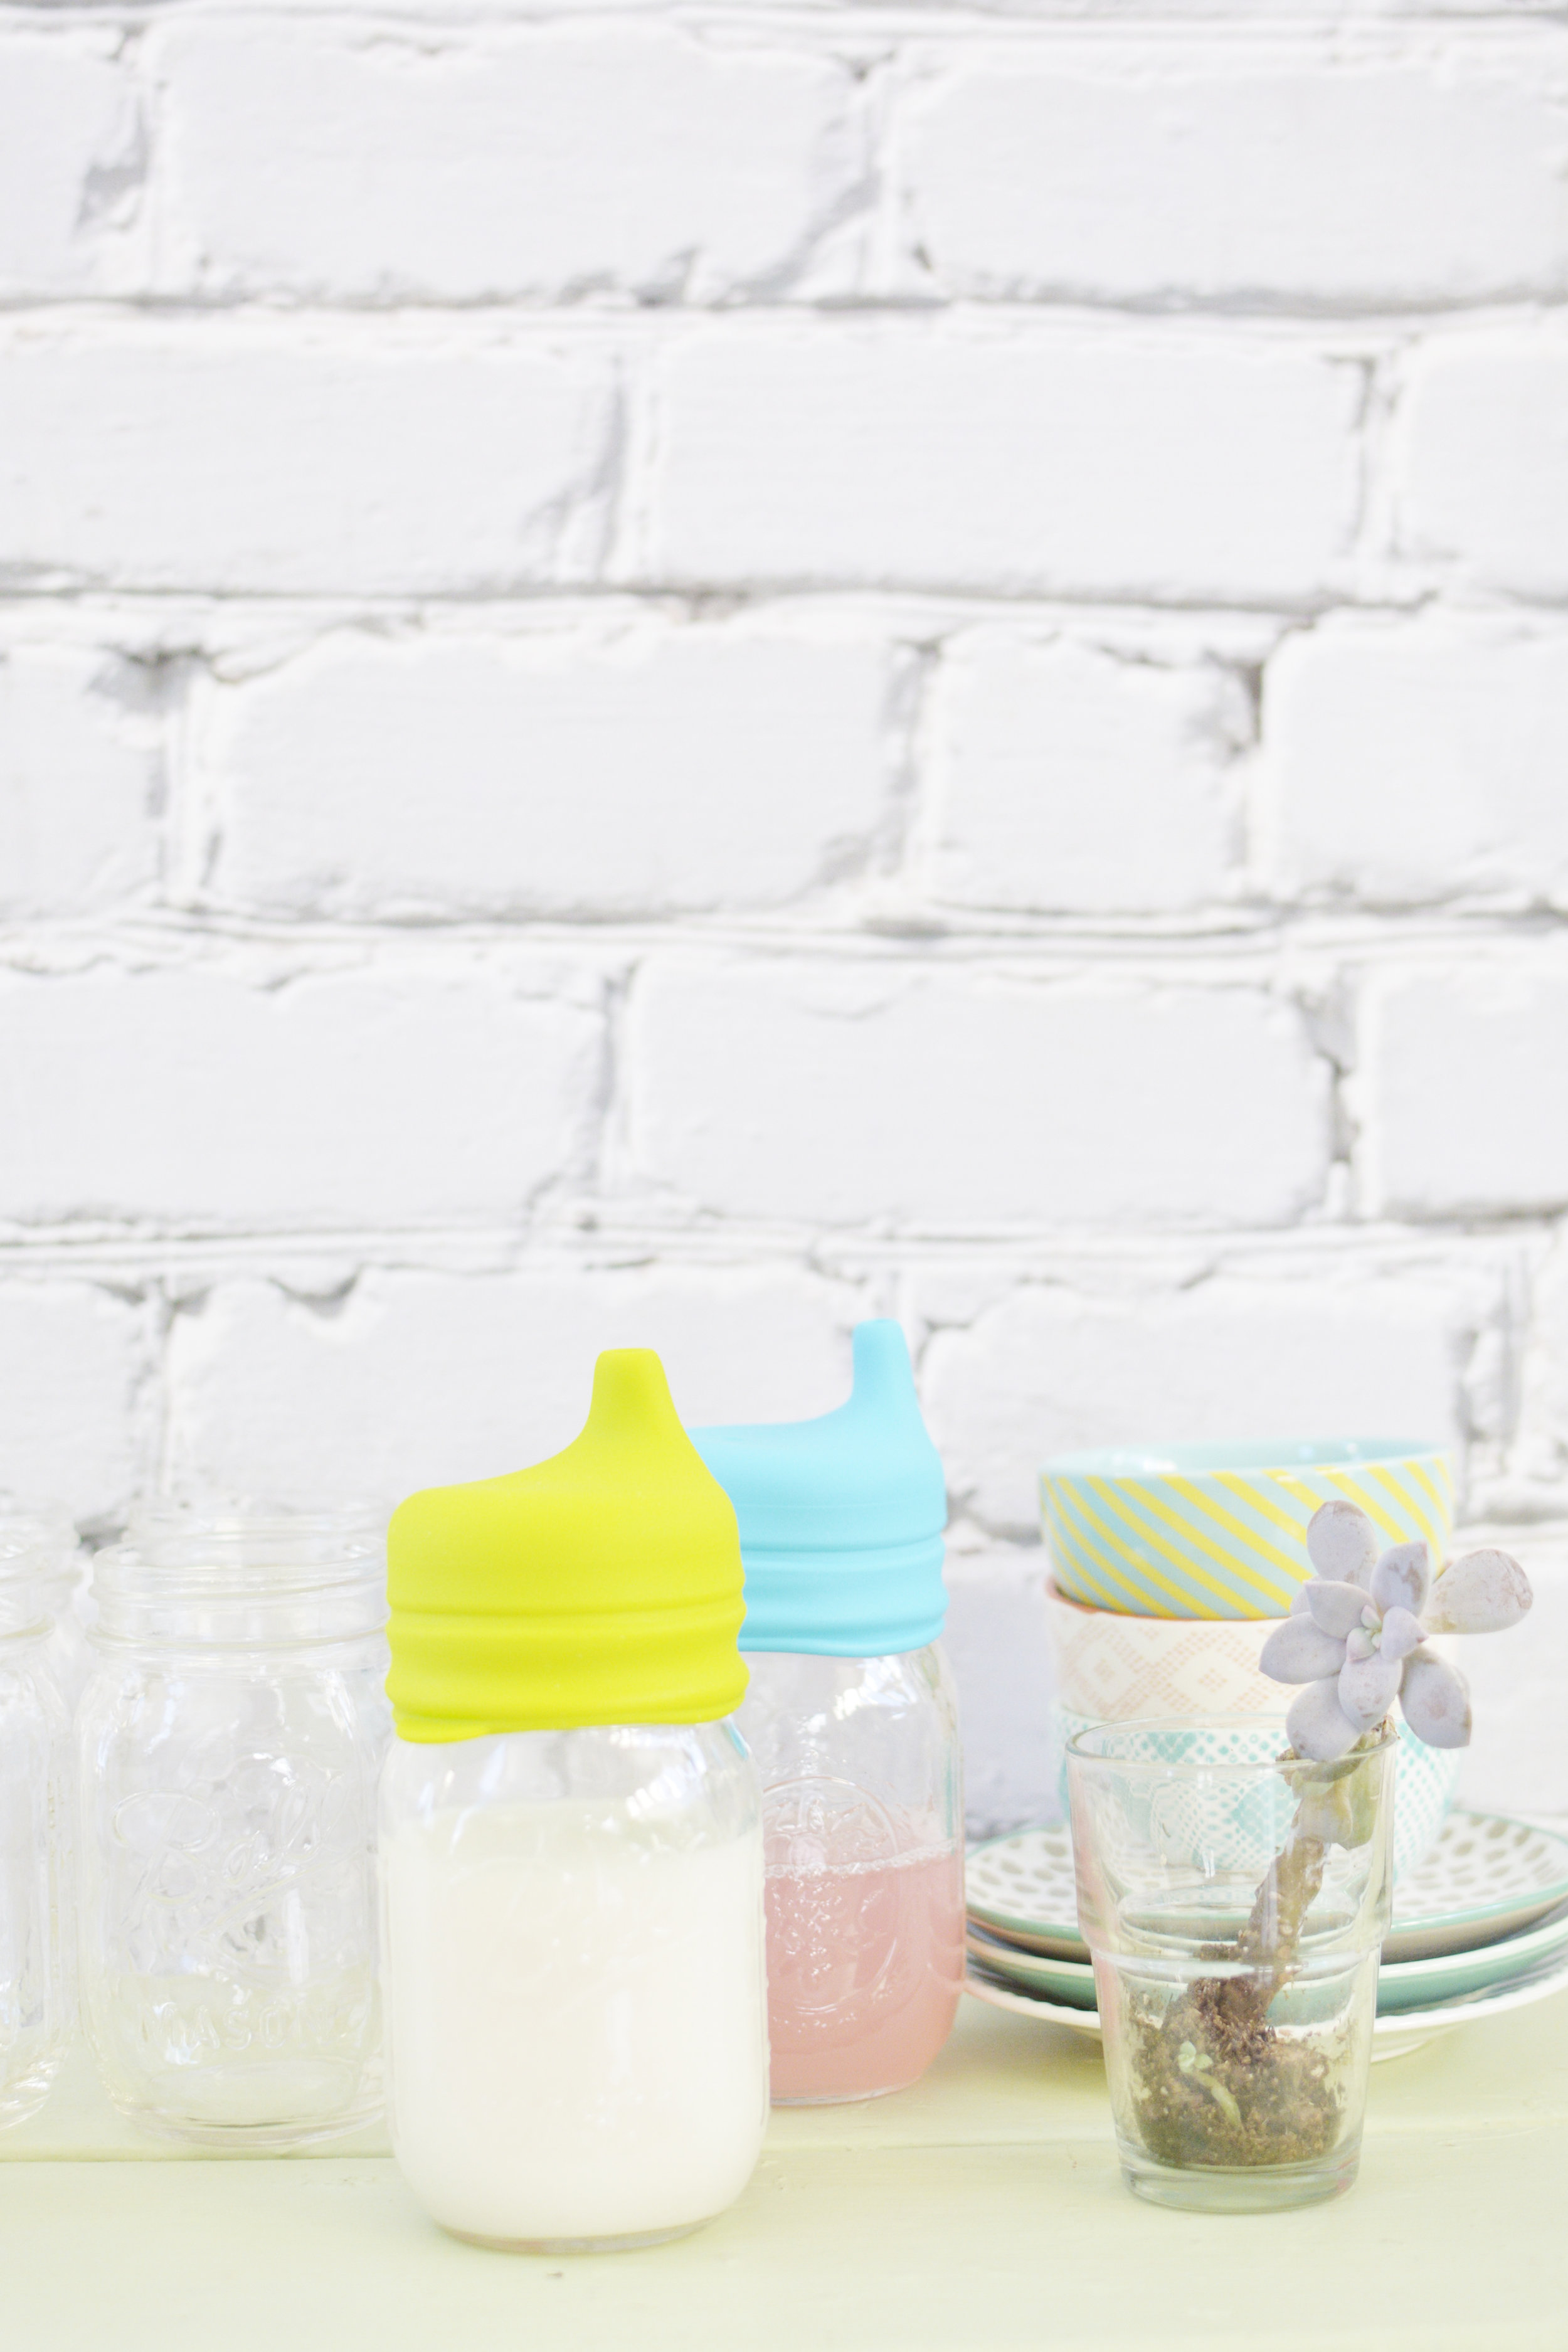 Kitchen organization sippy cups